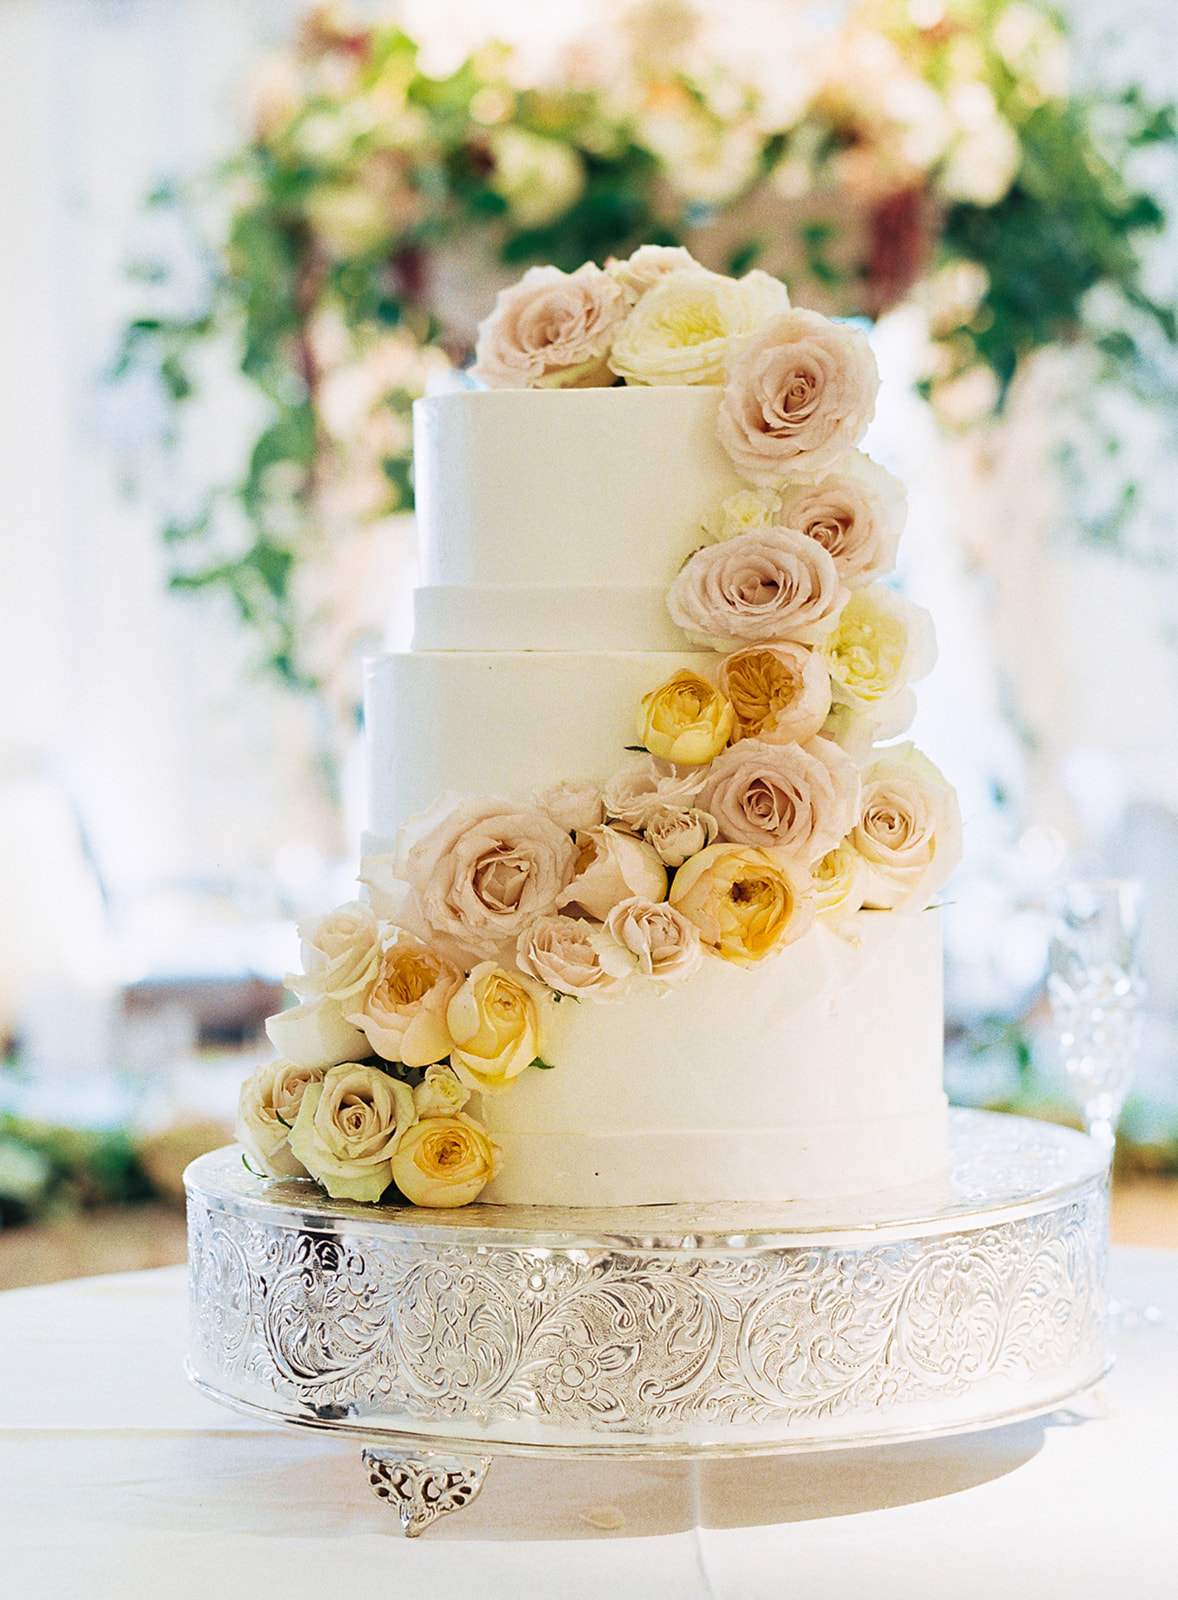 three-tier wedding cake decorated with garland of fresh flowers